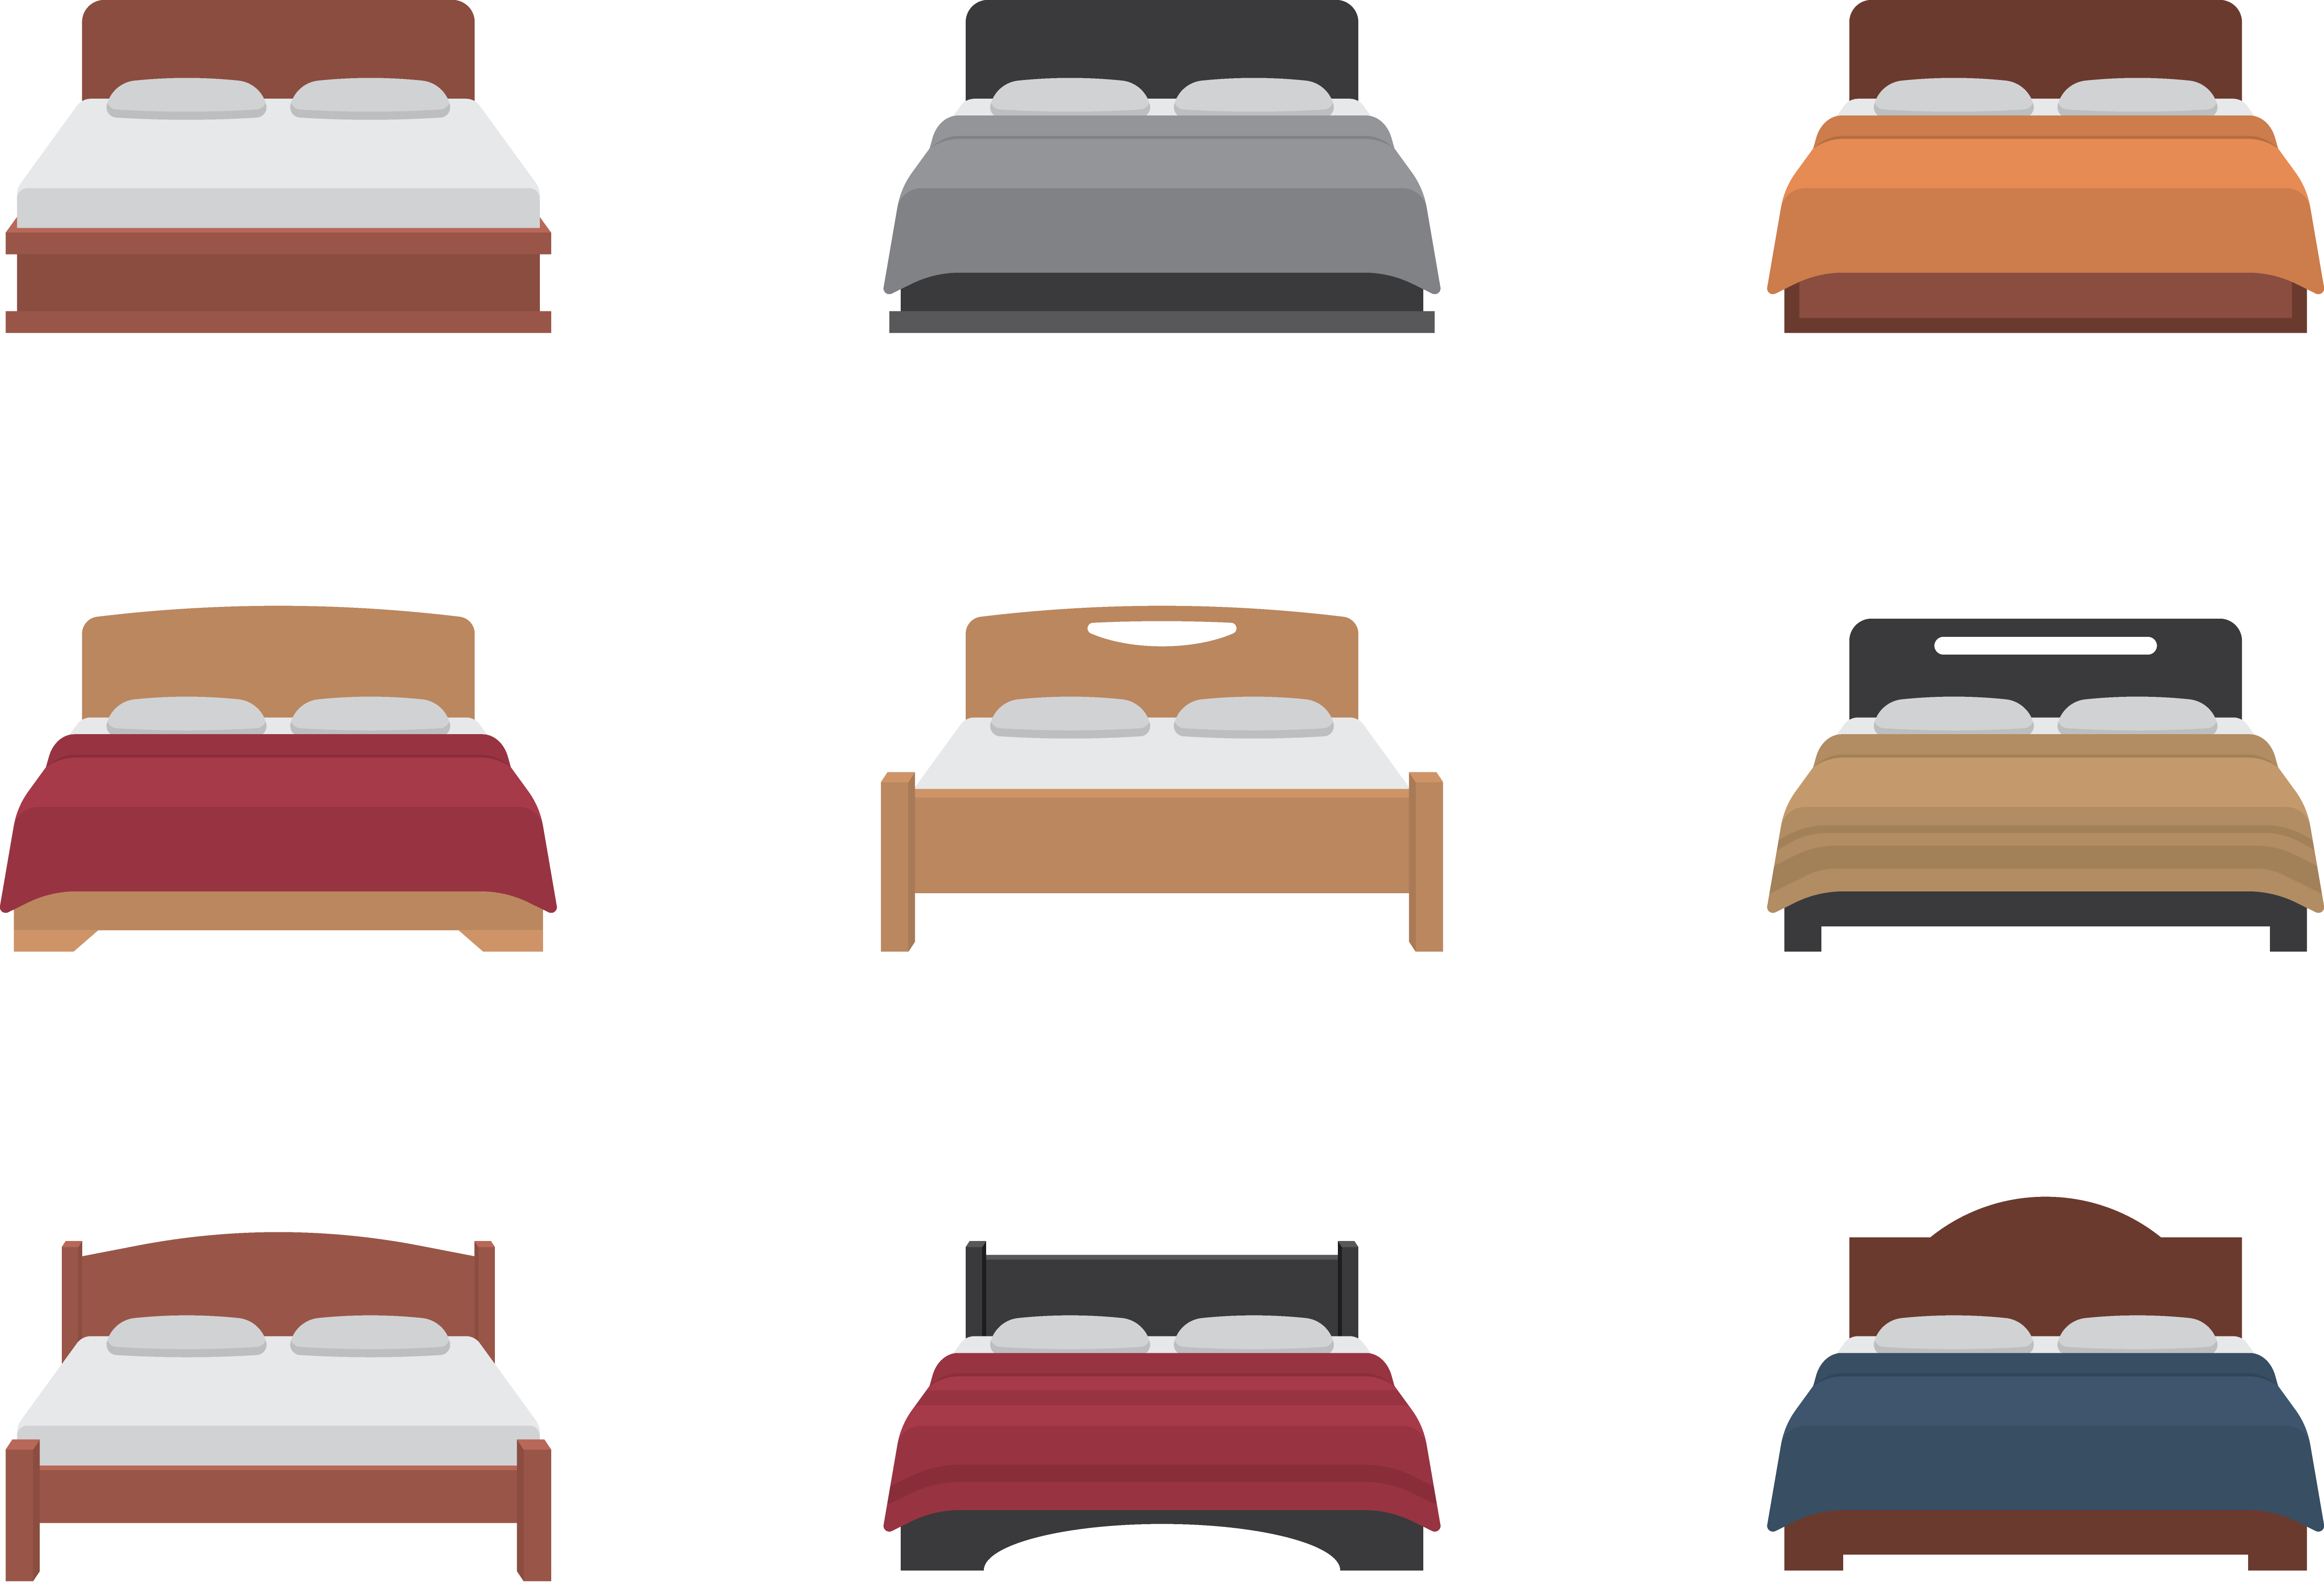 Clipart bed bed linen. Sofa sheet furniture household